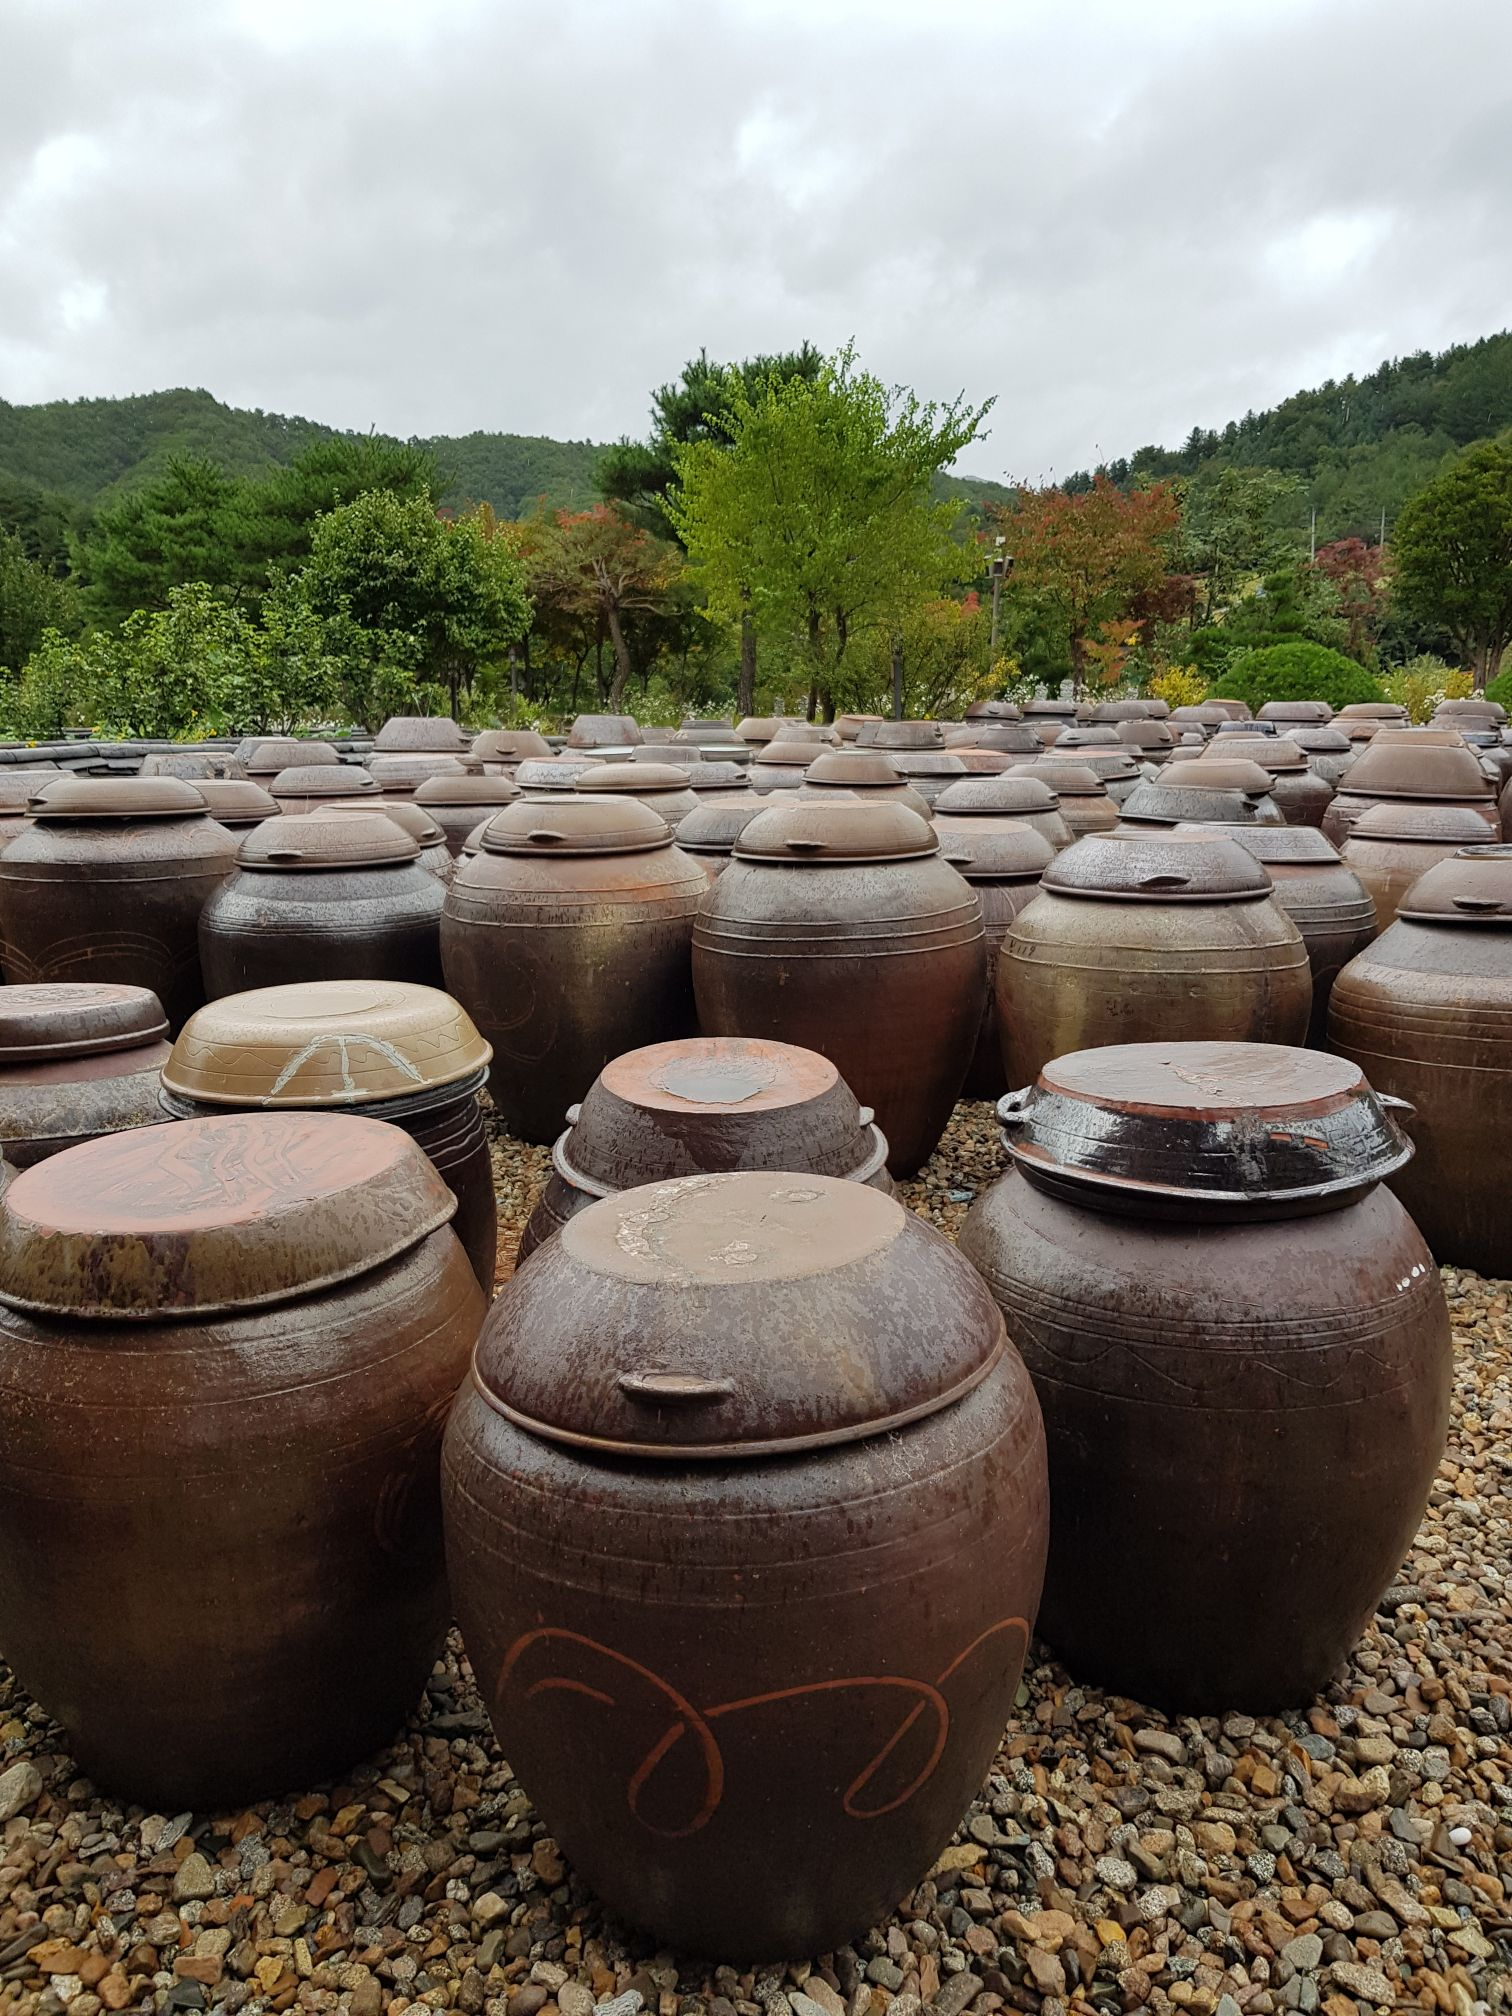 These pots are filled with fermented food, which often take months, if not years to be ready for consumption